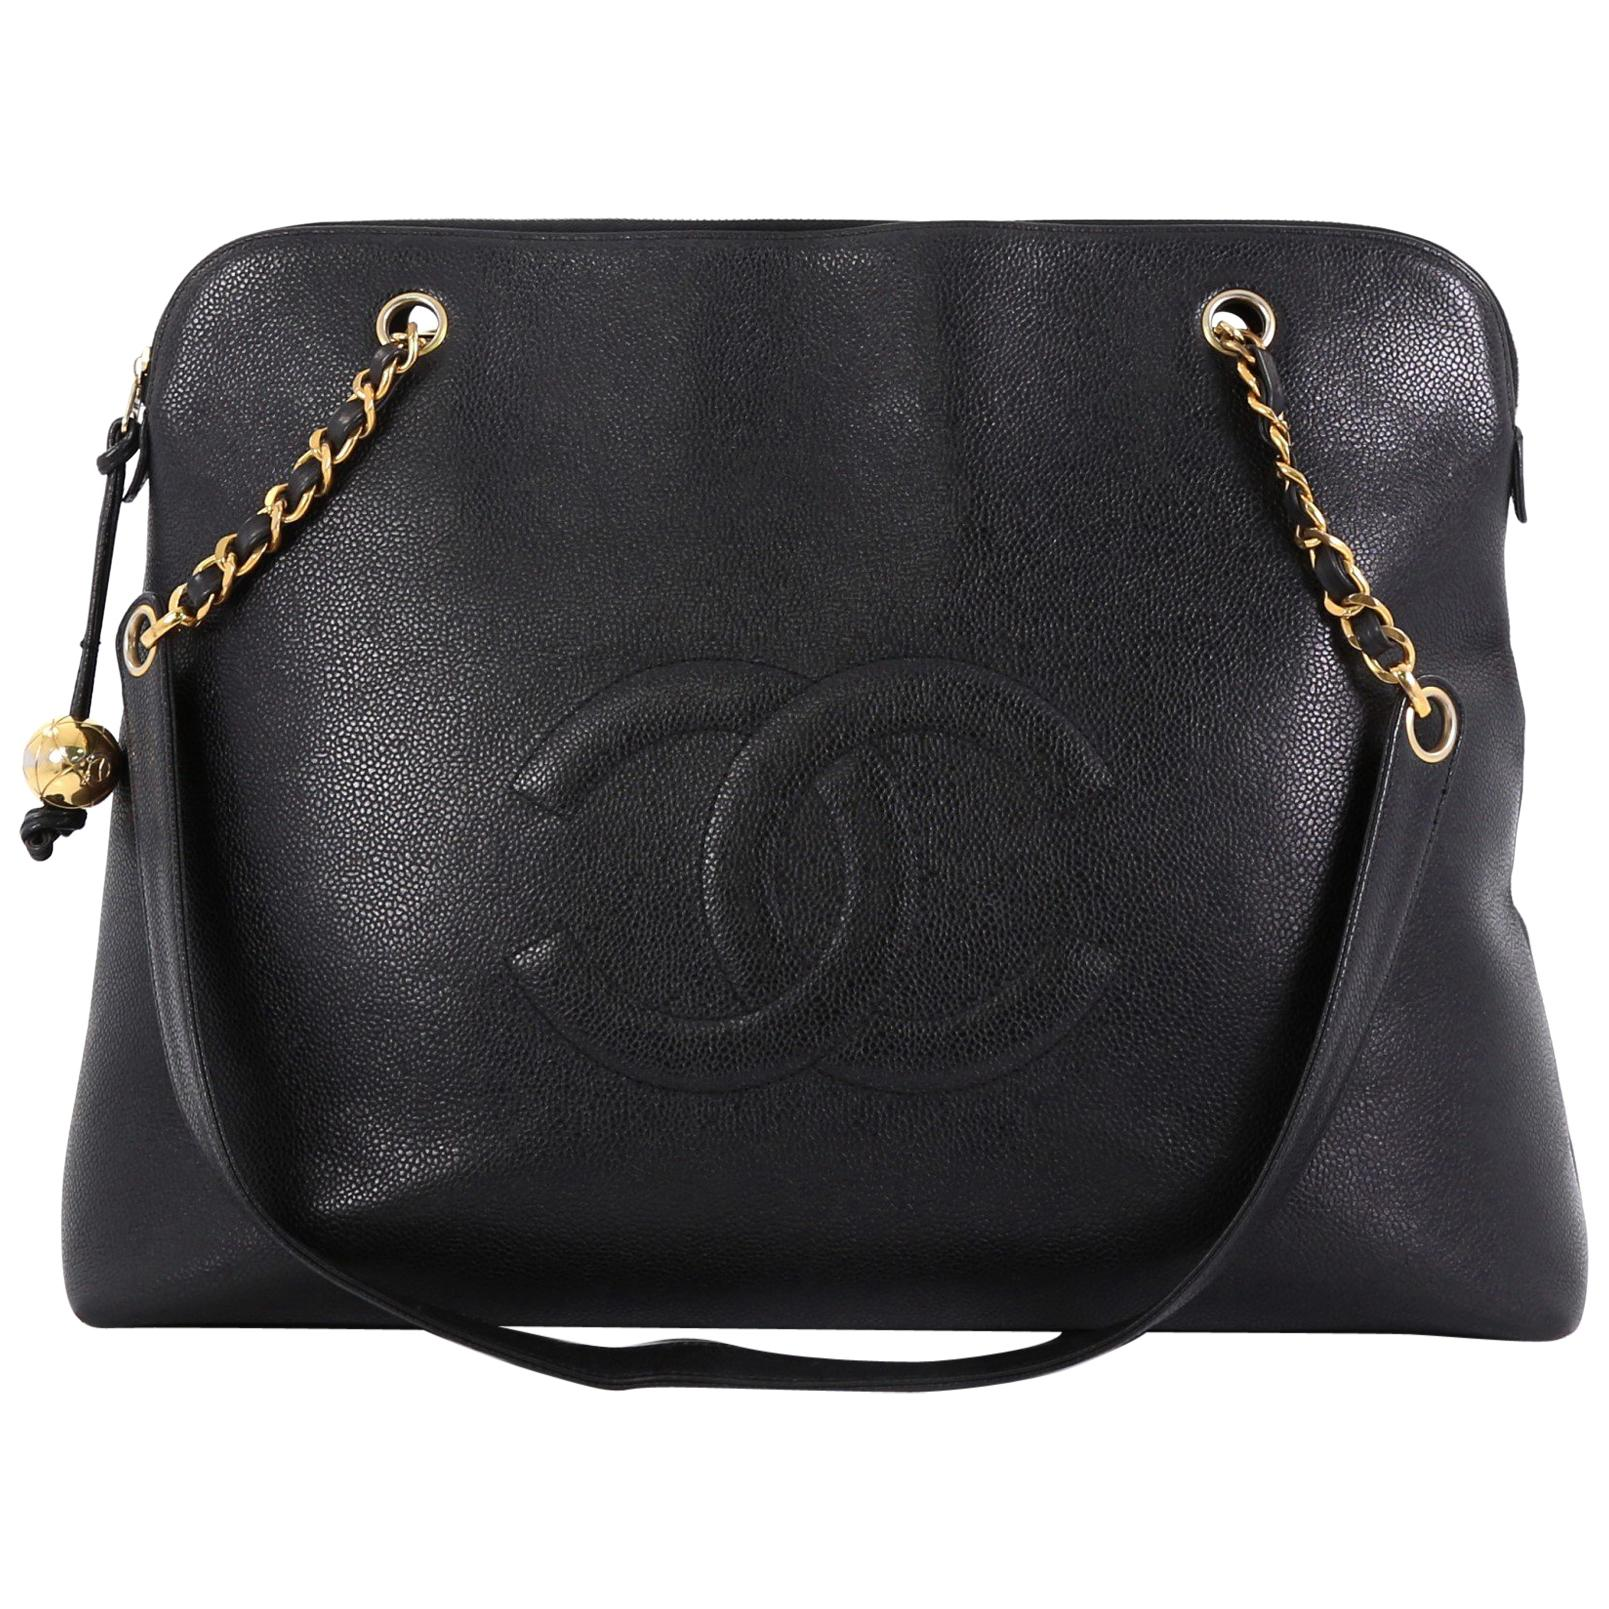 a04a7279b6e7 Vintage Chanel Purses and Handbags at 1stdibs